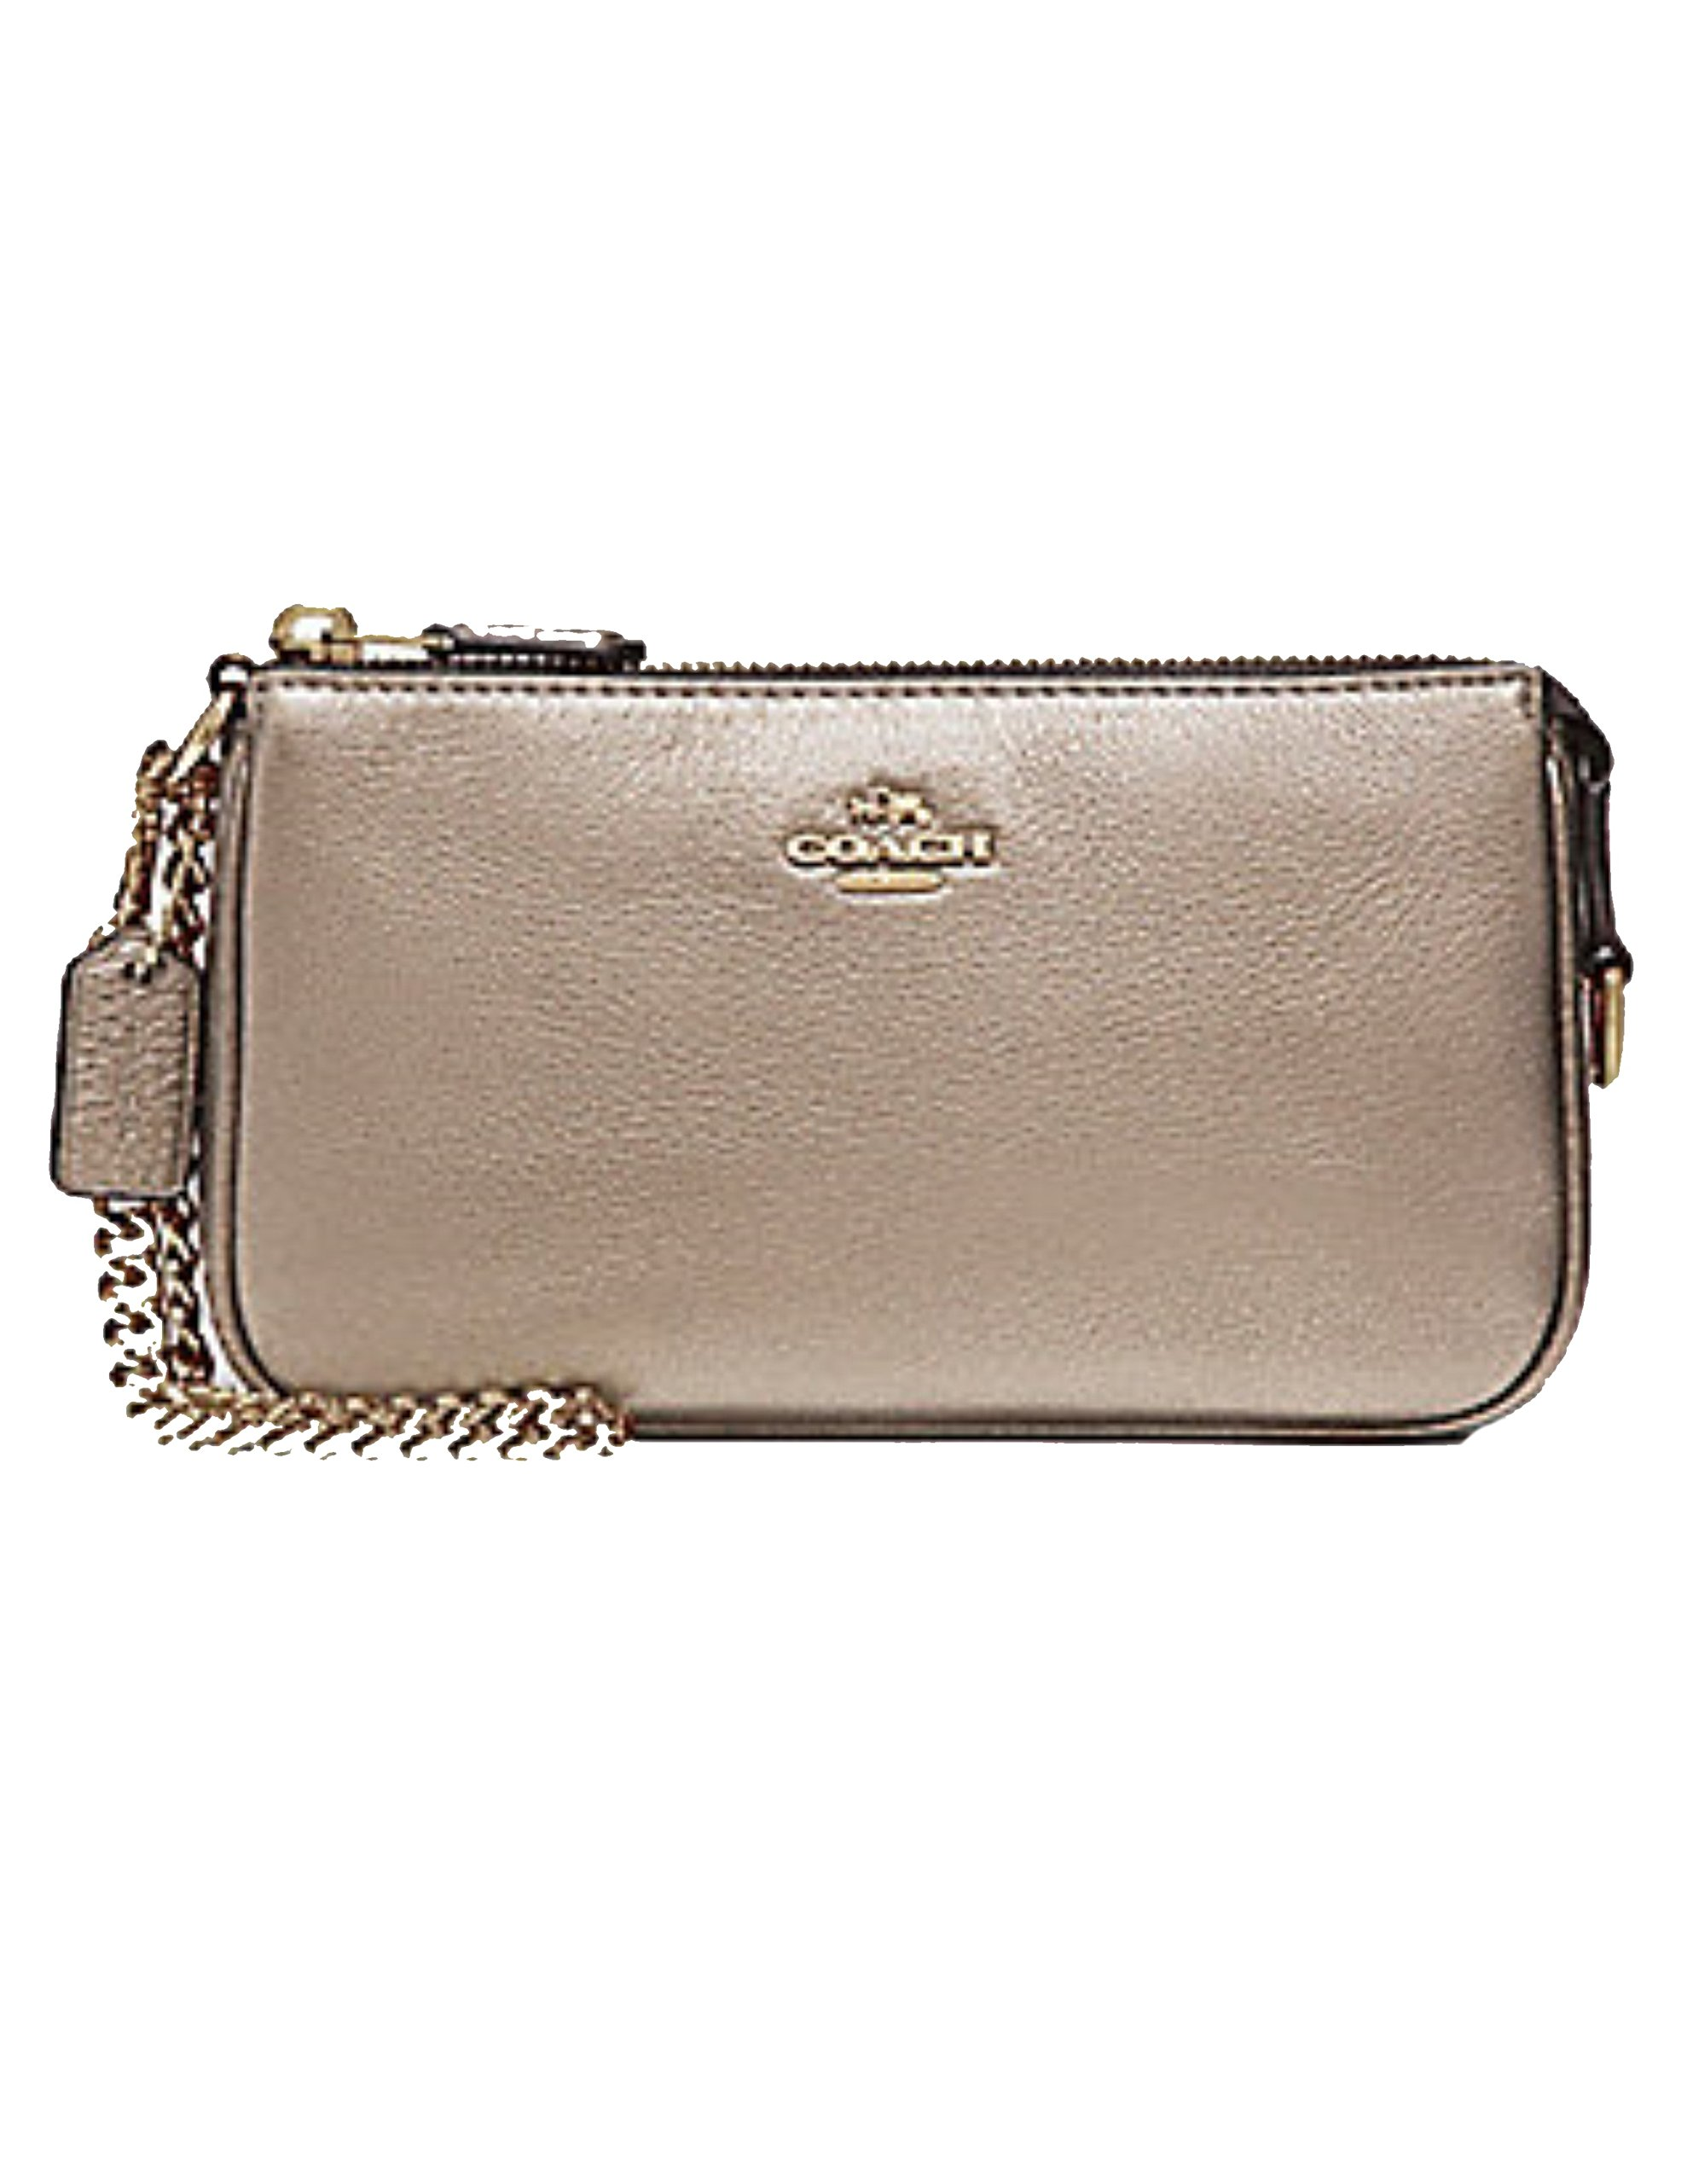 LARGE WRISTLET 19 IN METALLIC PEBBLE LEATHER (COACH F20151) PLATINUM by Coach